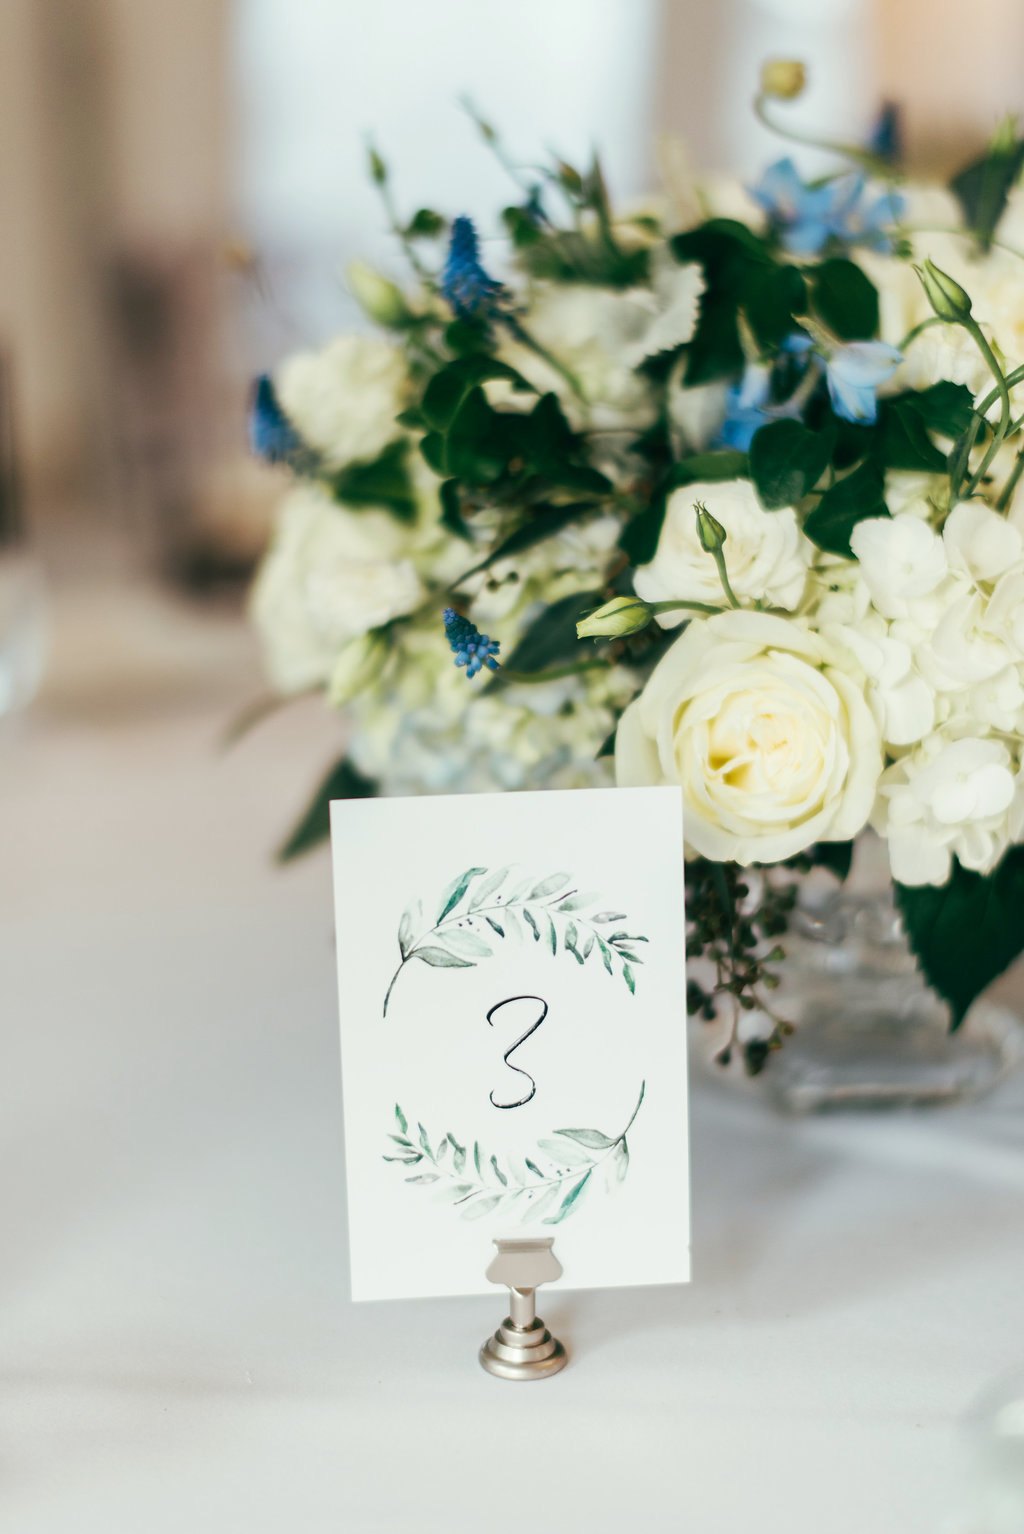 Atelier Ashley Flowers + Woodlawn + Pope Leighhey House + Anna Reynal Photography + DC Weddings + DC Florist + centerpieces + dusty blue and white flowers + dusty blue centerpiece